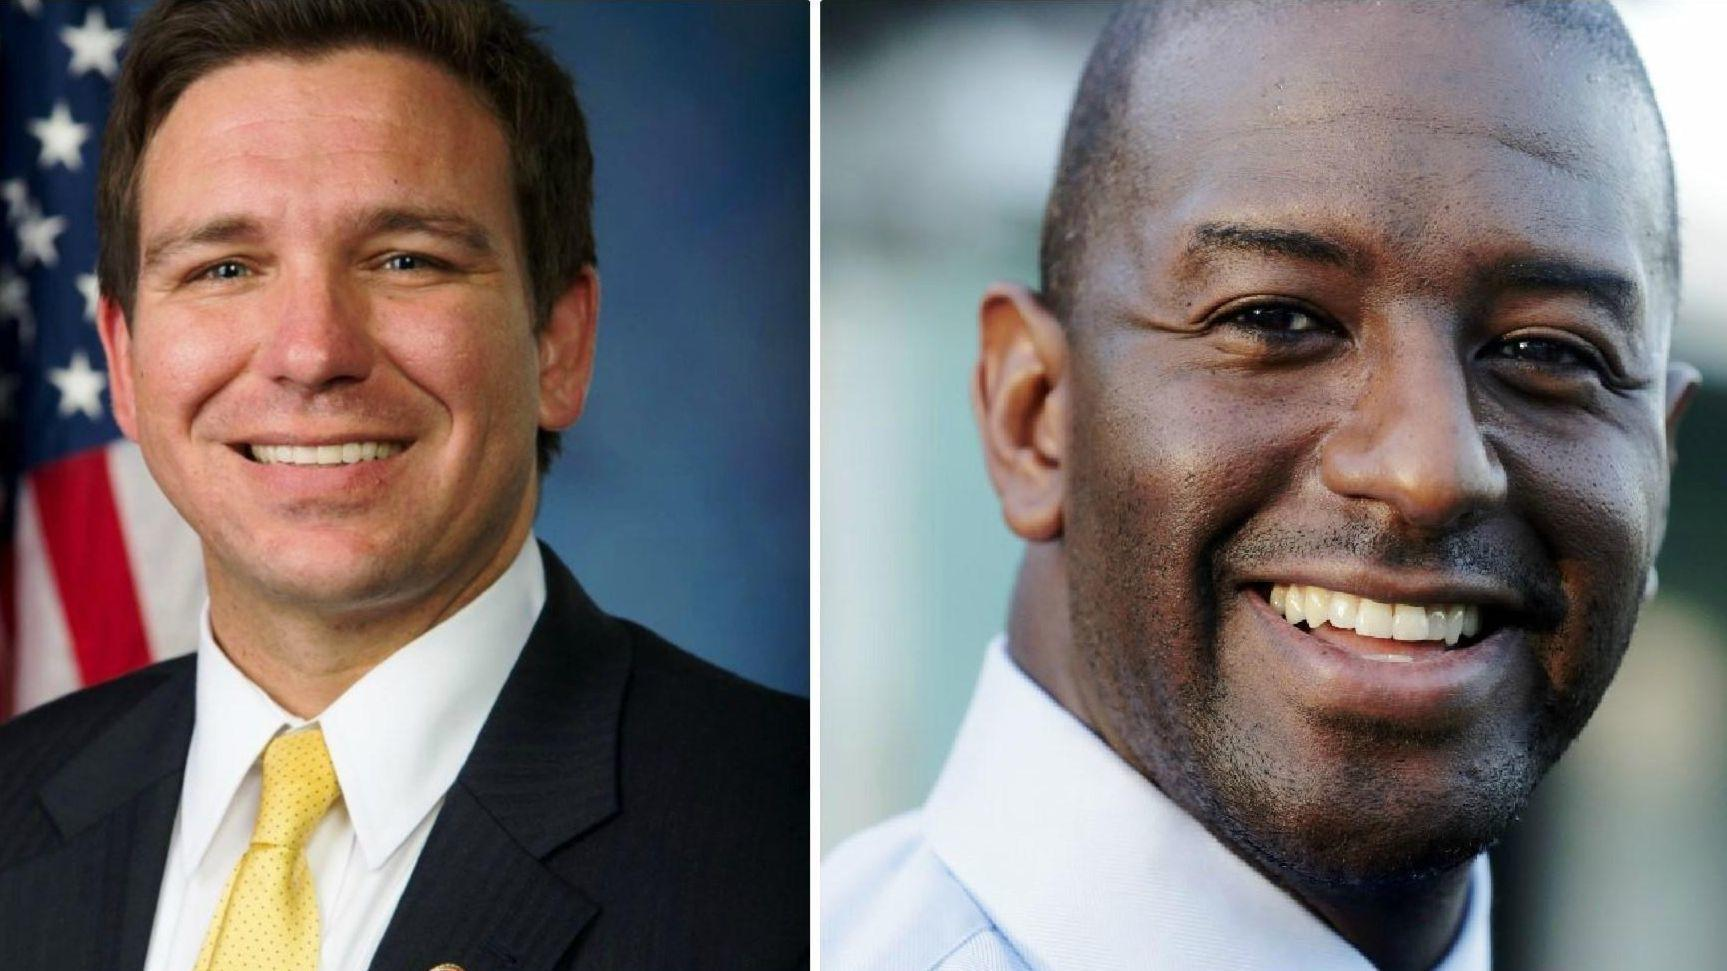 os-governor-race-desantis-gillum-issues-20180831